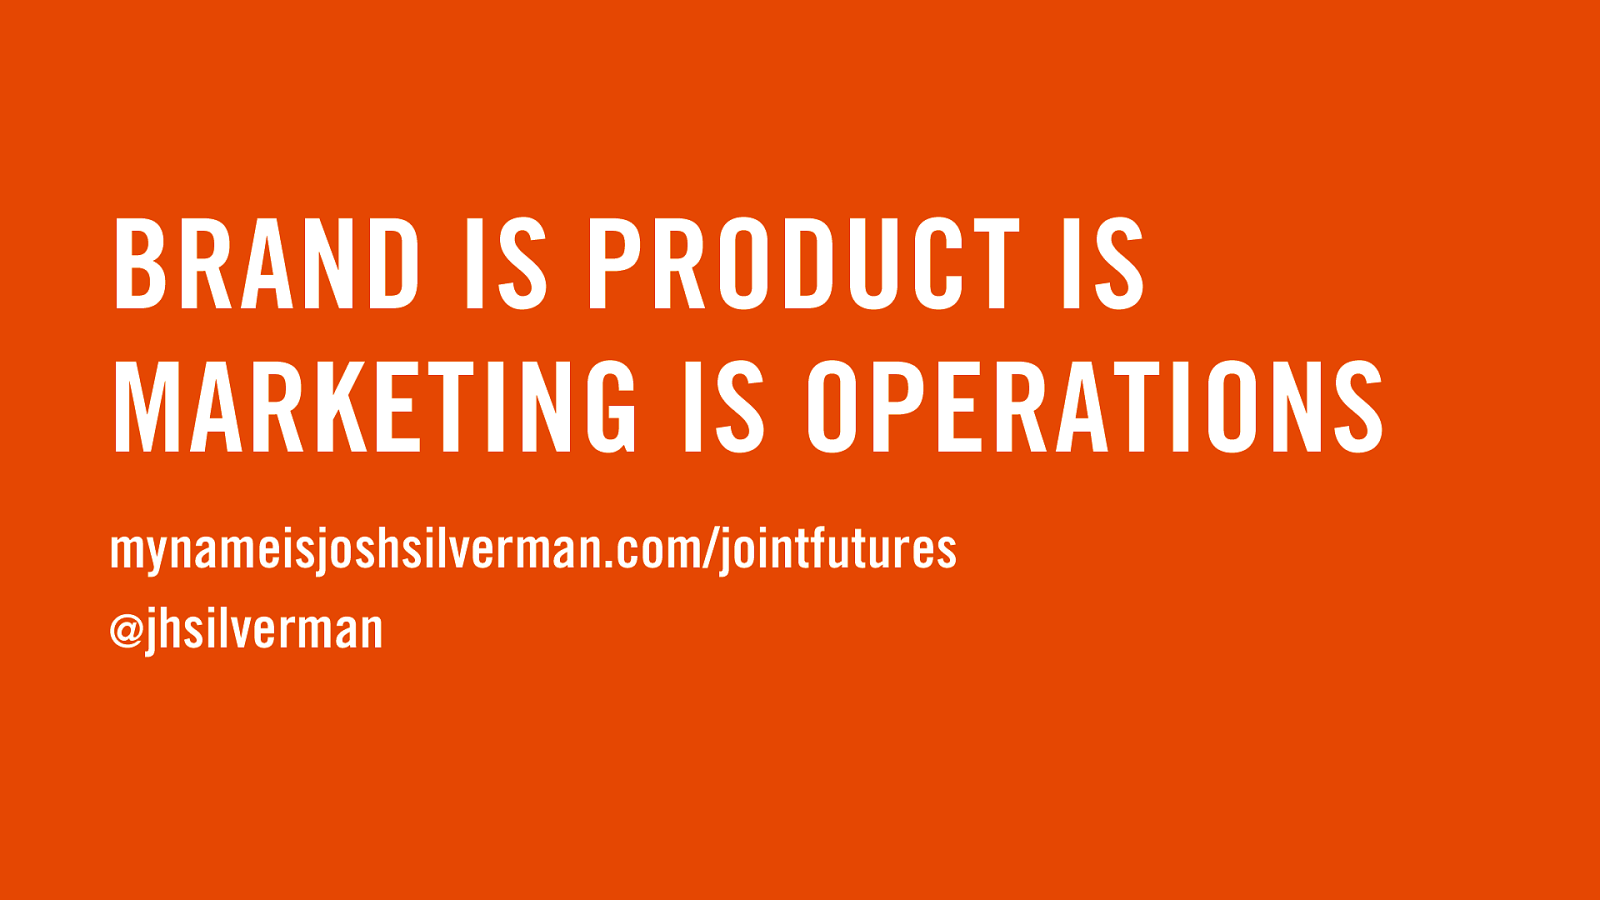 Brand is Product is Marketing is Operations v2